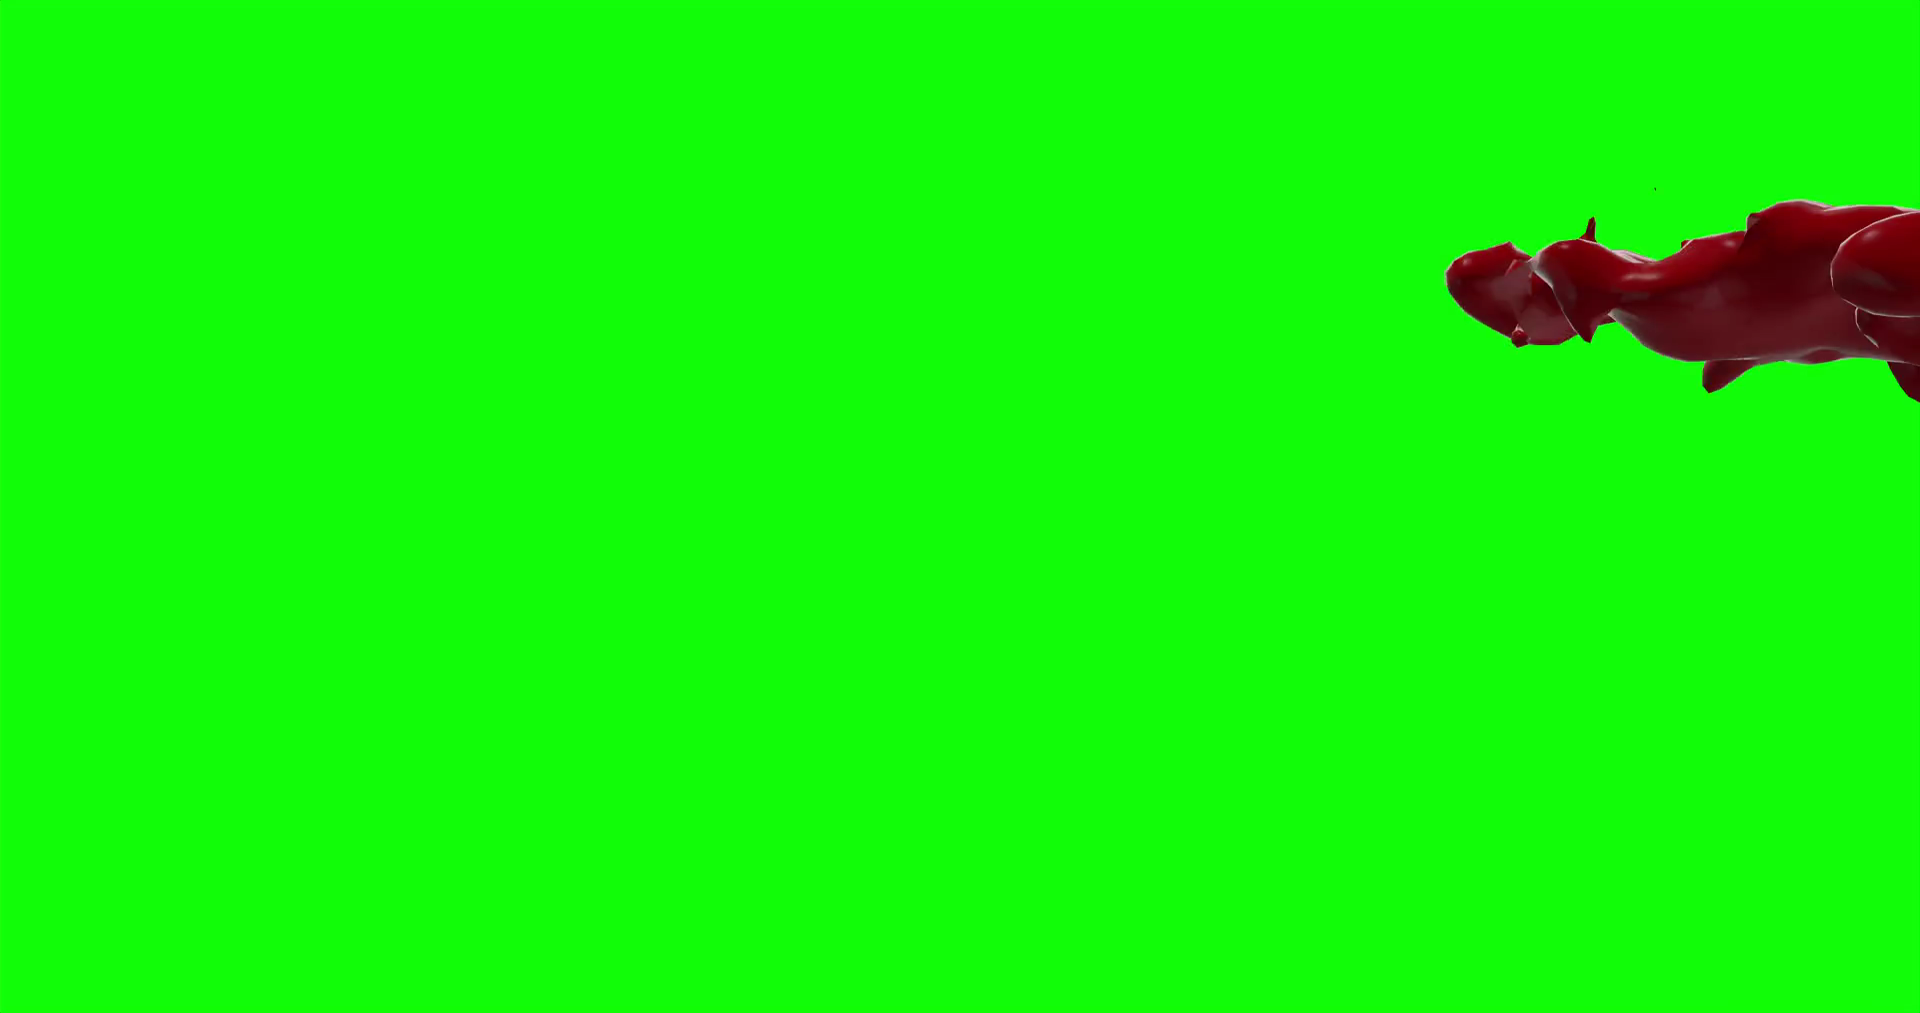 Hd Blood Burst Slow Motion Green Screen 178 Stock Video Footage Storyblocks I've gathered about 100 blood texture photos and backgrounds that you can use in your designs. storyblocks